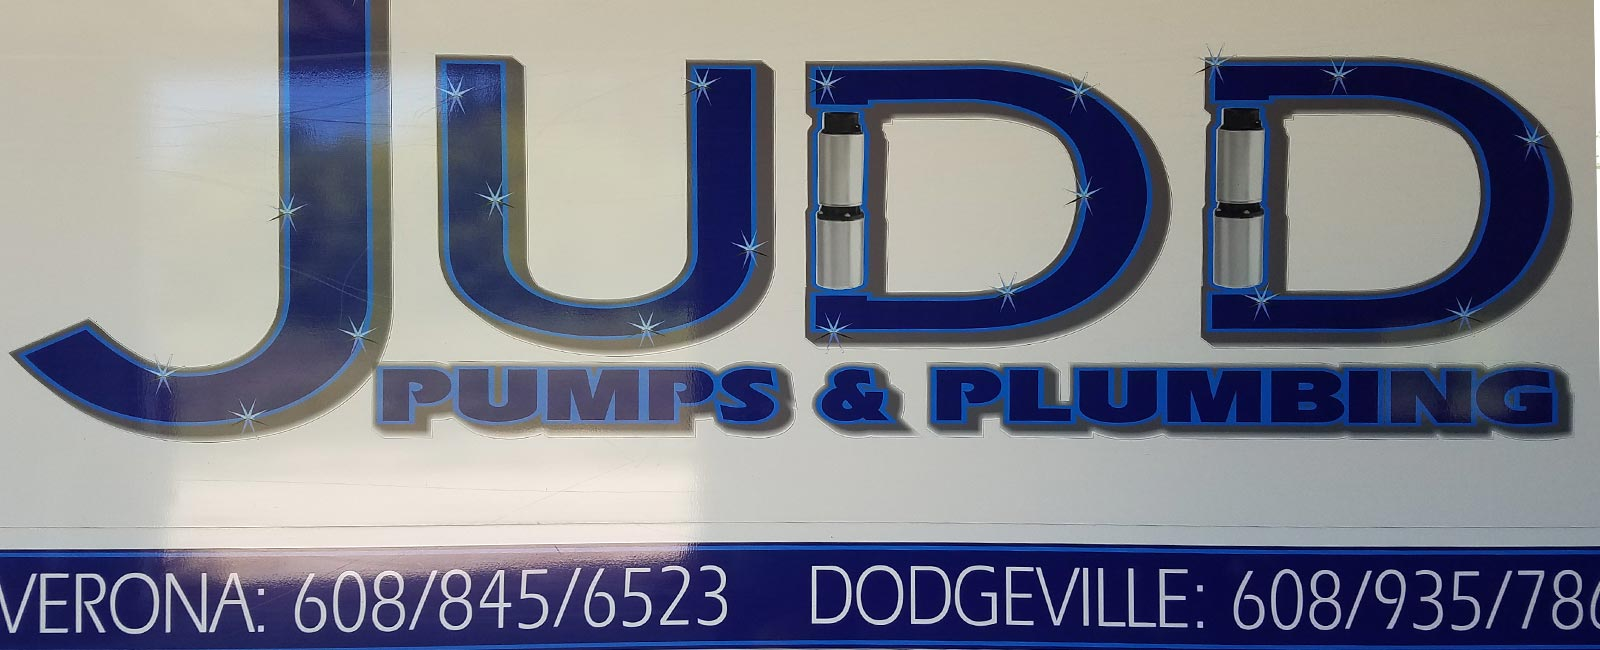 Judd Pumps & Plumbing